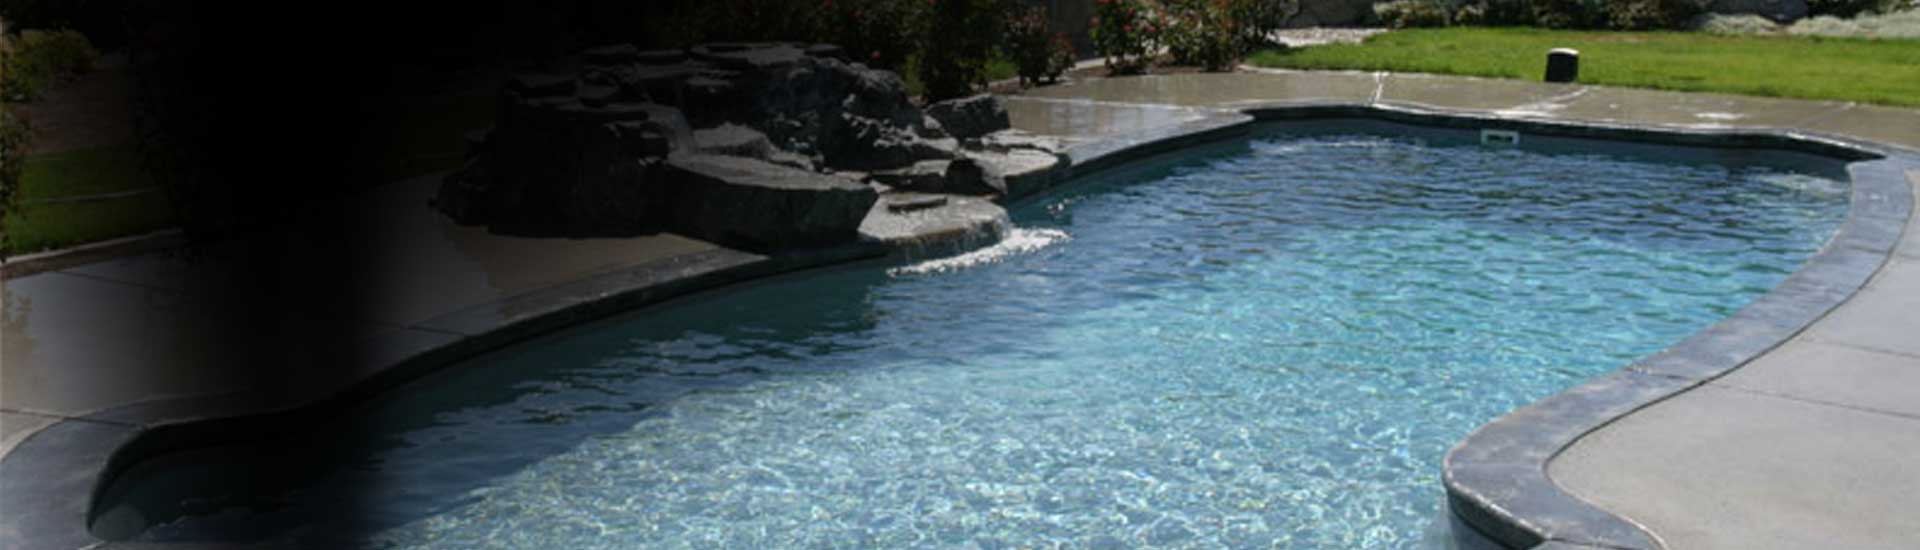 Affordable pools llc swimming pool construction - Swimming pool loans interest rates ...